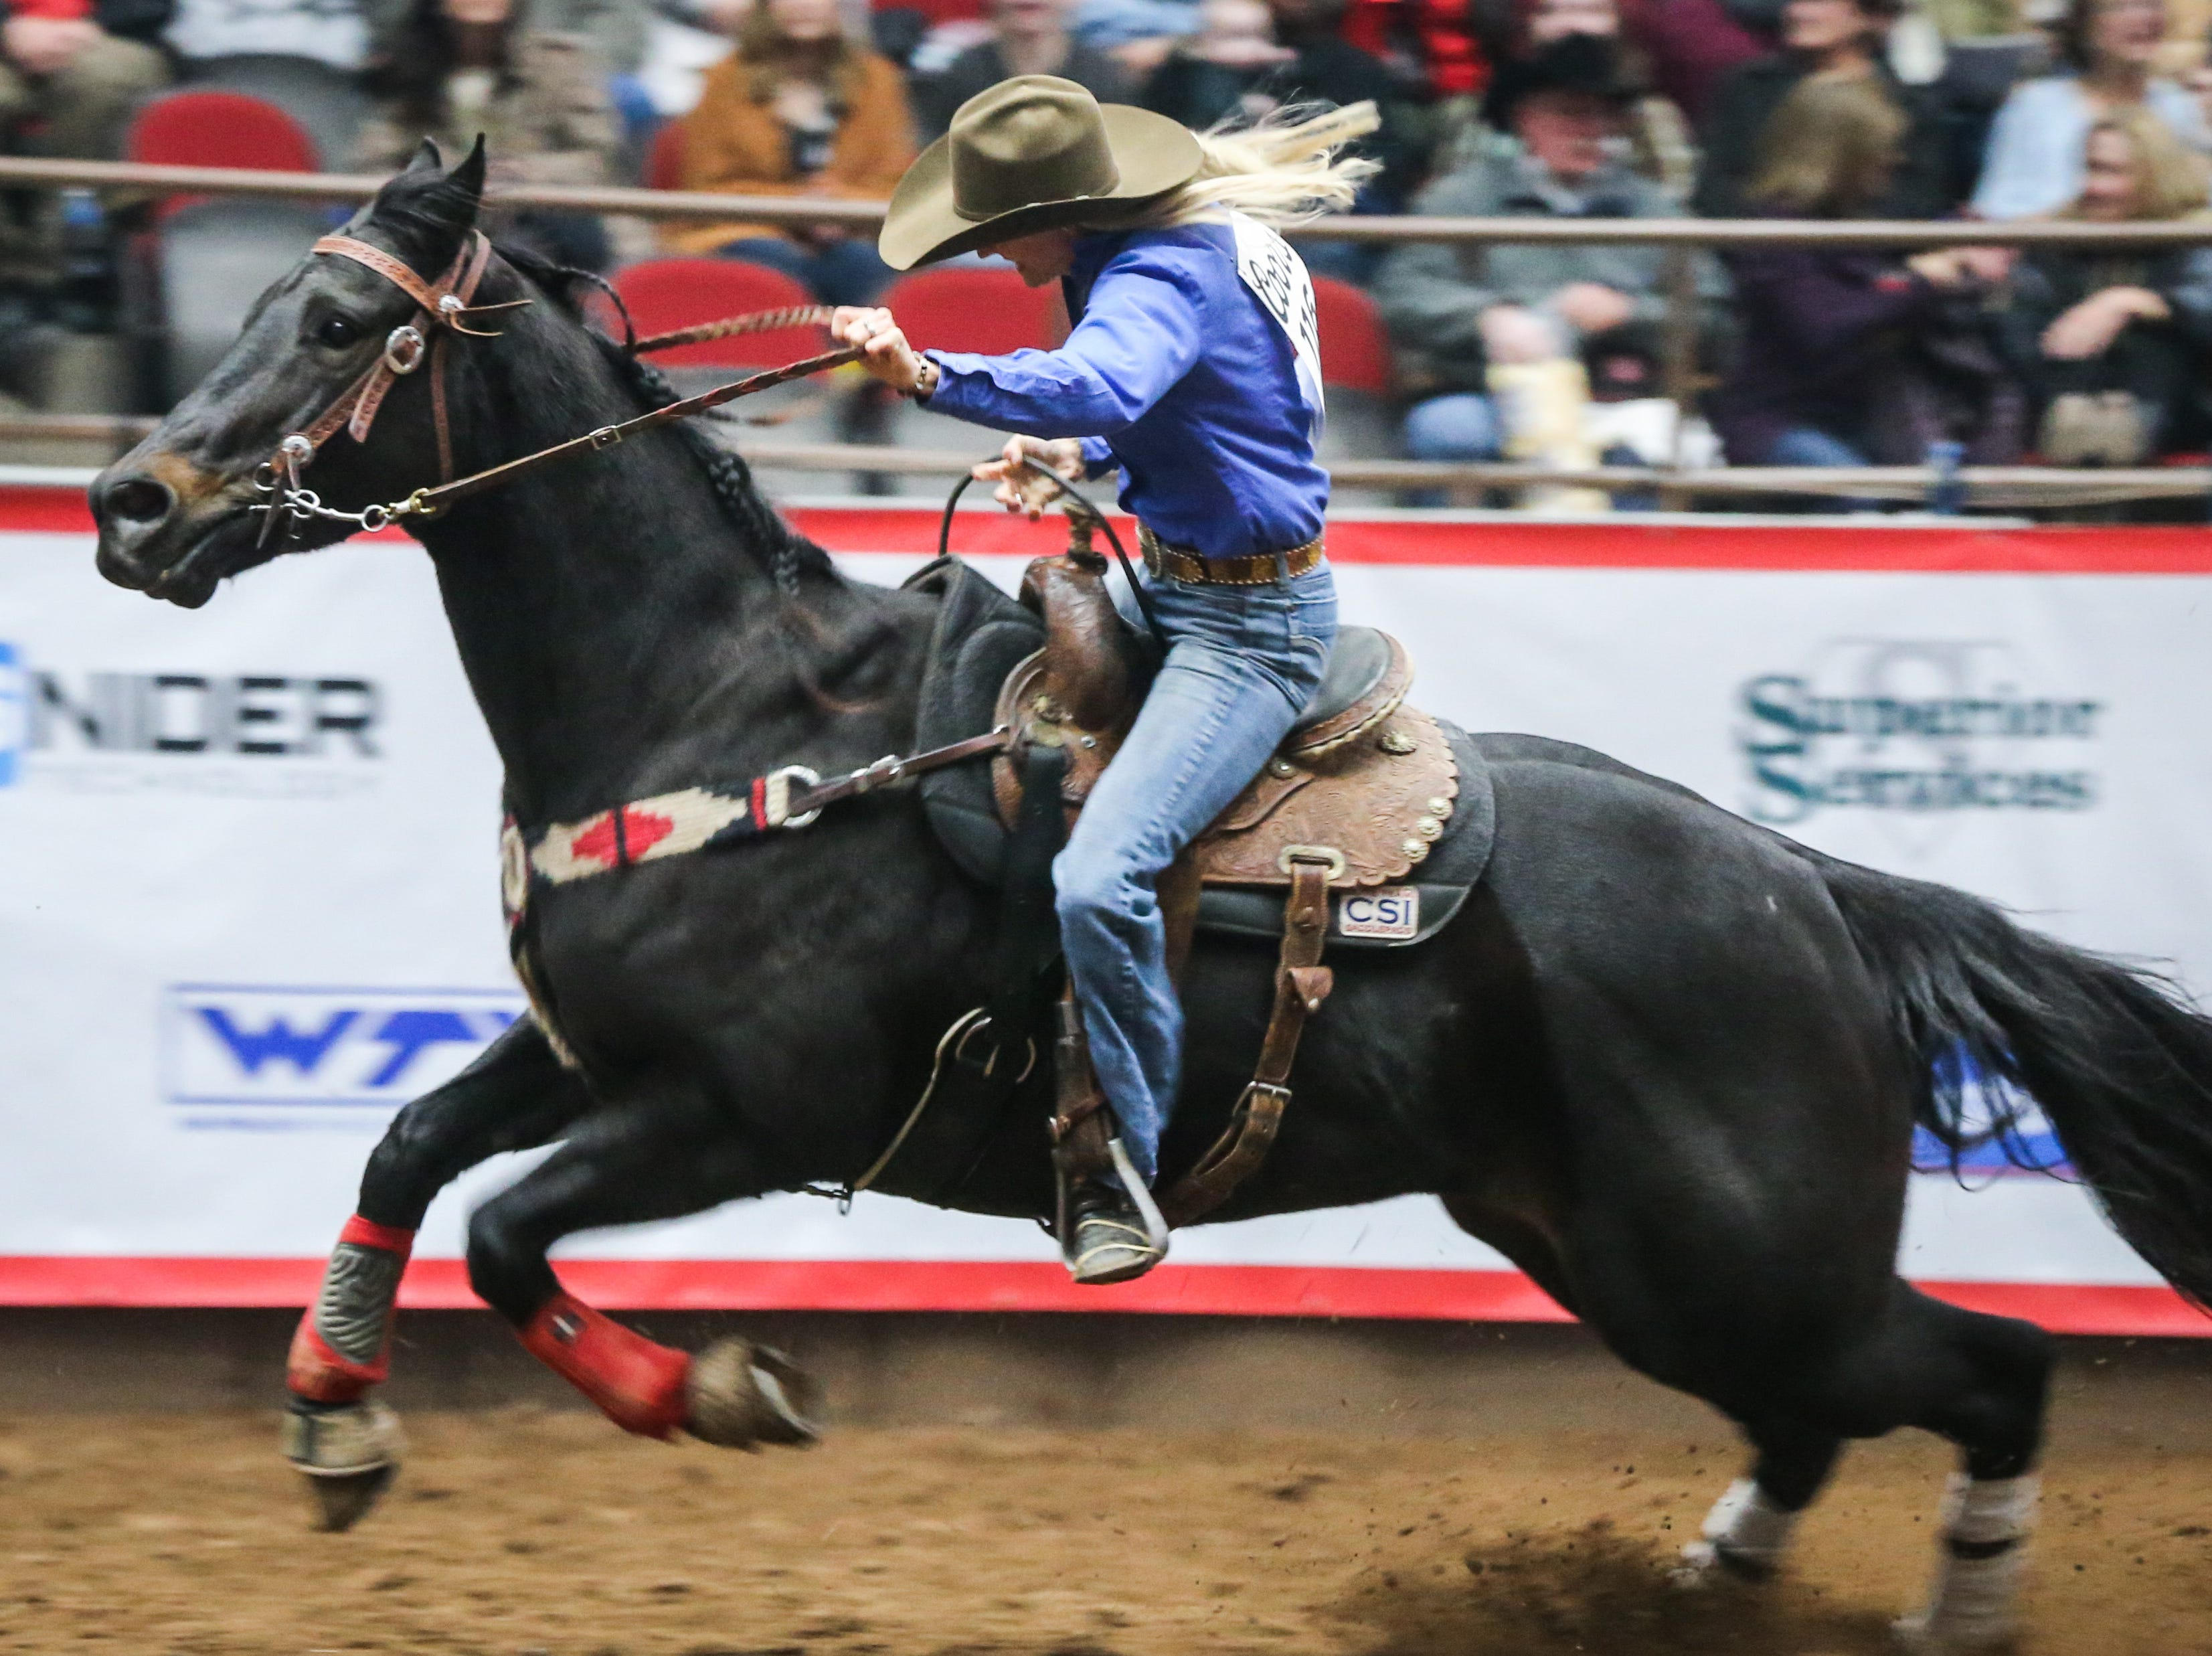 Nicole Laurence races back across the arena during the San Angelo Stock Show & Rodeo show Saturday, Feb. 9, 2019, at Foster Communications Coliseum.